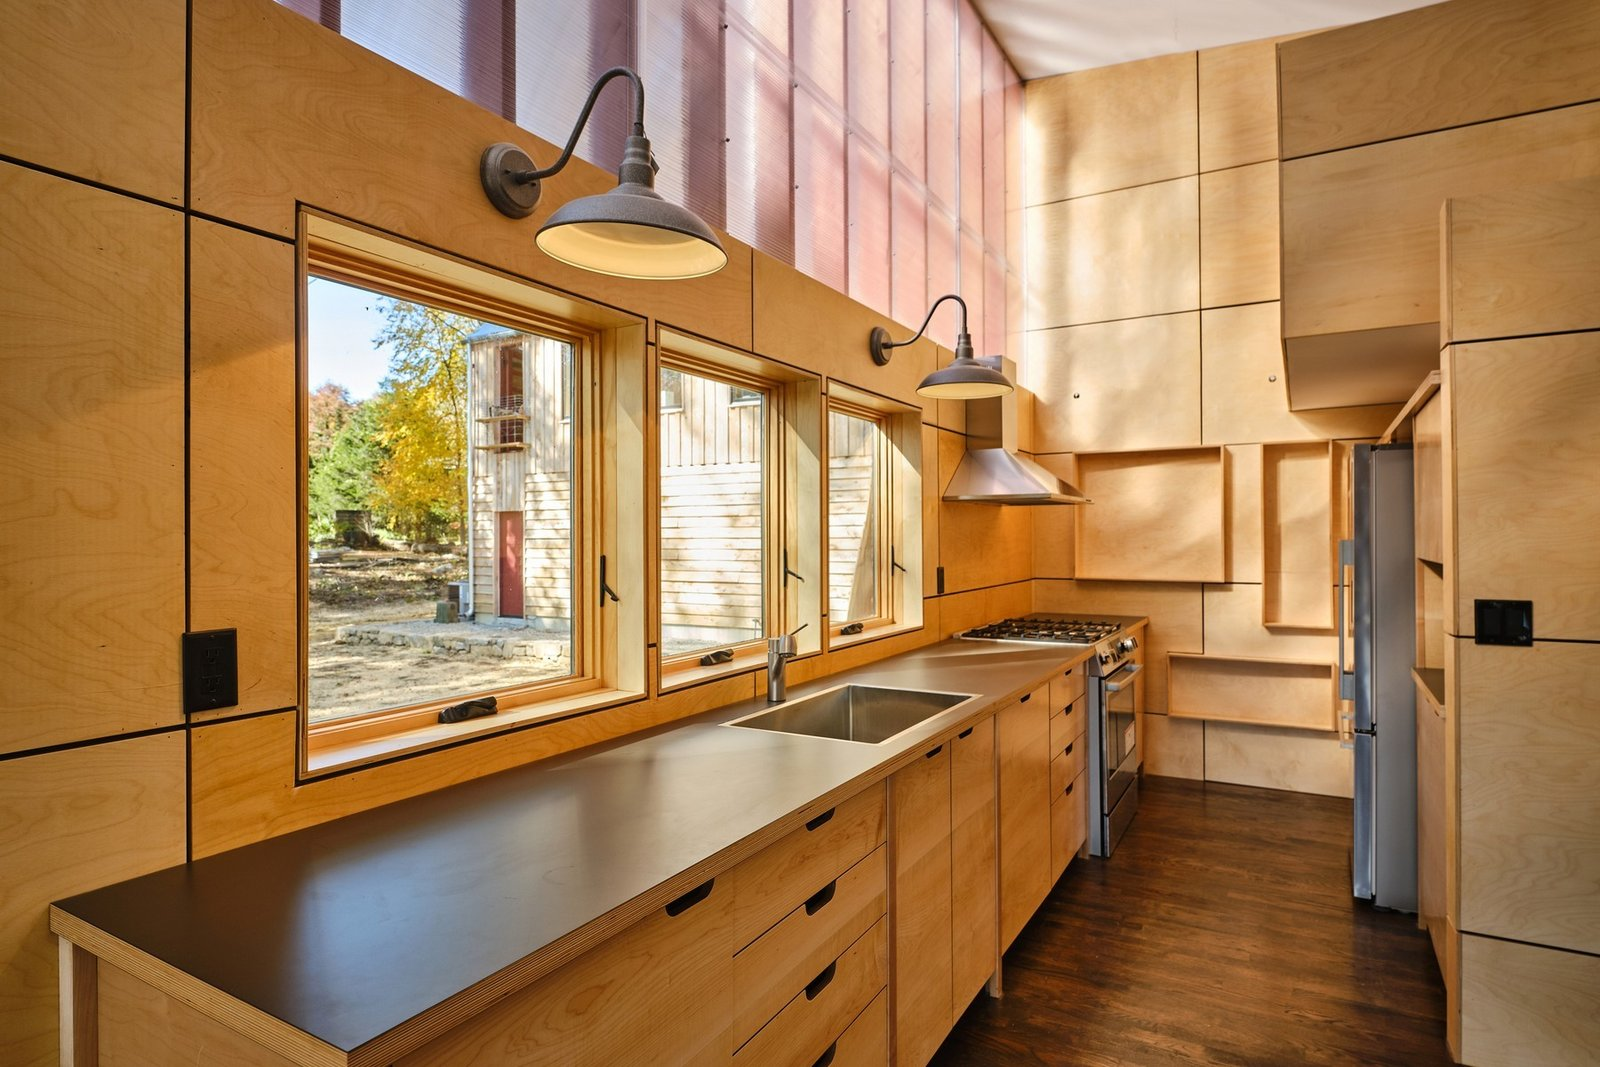 Kitchen, Wood Cabinet, Wall Lighting, Range, Range Hood, Drop In Sink, Dark Hardwood Floor, Wood Backsplashe, and Refrigerator The kitchen features all new stainless-steel appliances and custom cabinetry.  Photo 5 of 10 in A Connecticut Condo That Hugs the Patchogue River Asks $575K